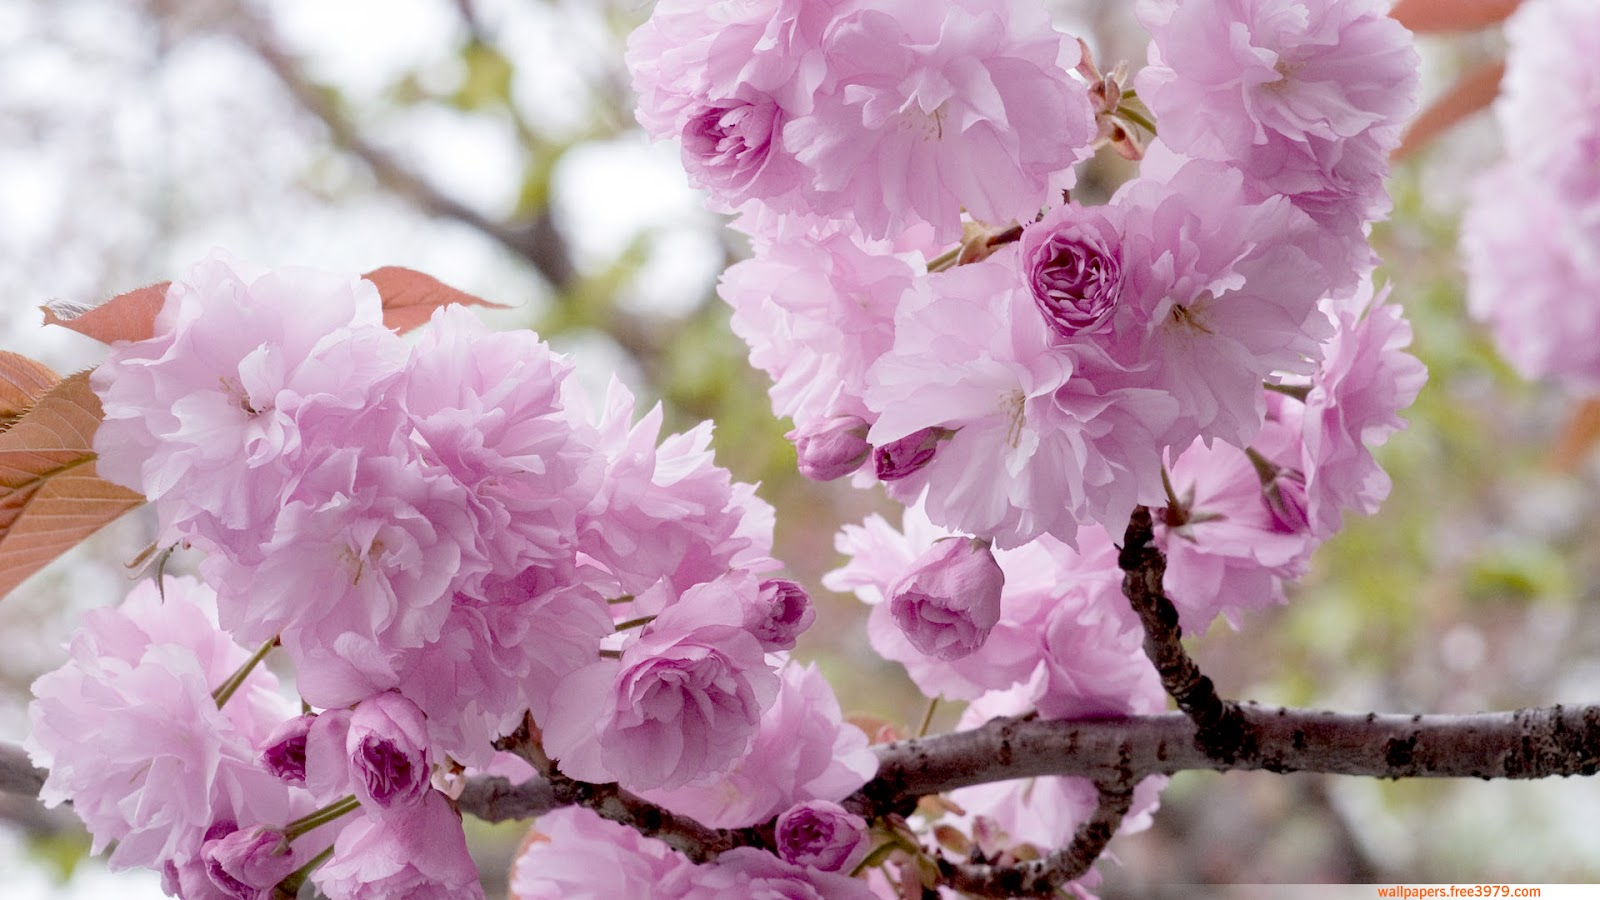 wallpapers hd cherry blossom hd free download flower pictures. Black Bedroom Furniture Sets. Home Design Ideas